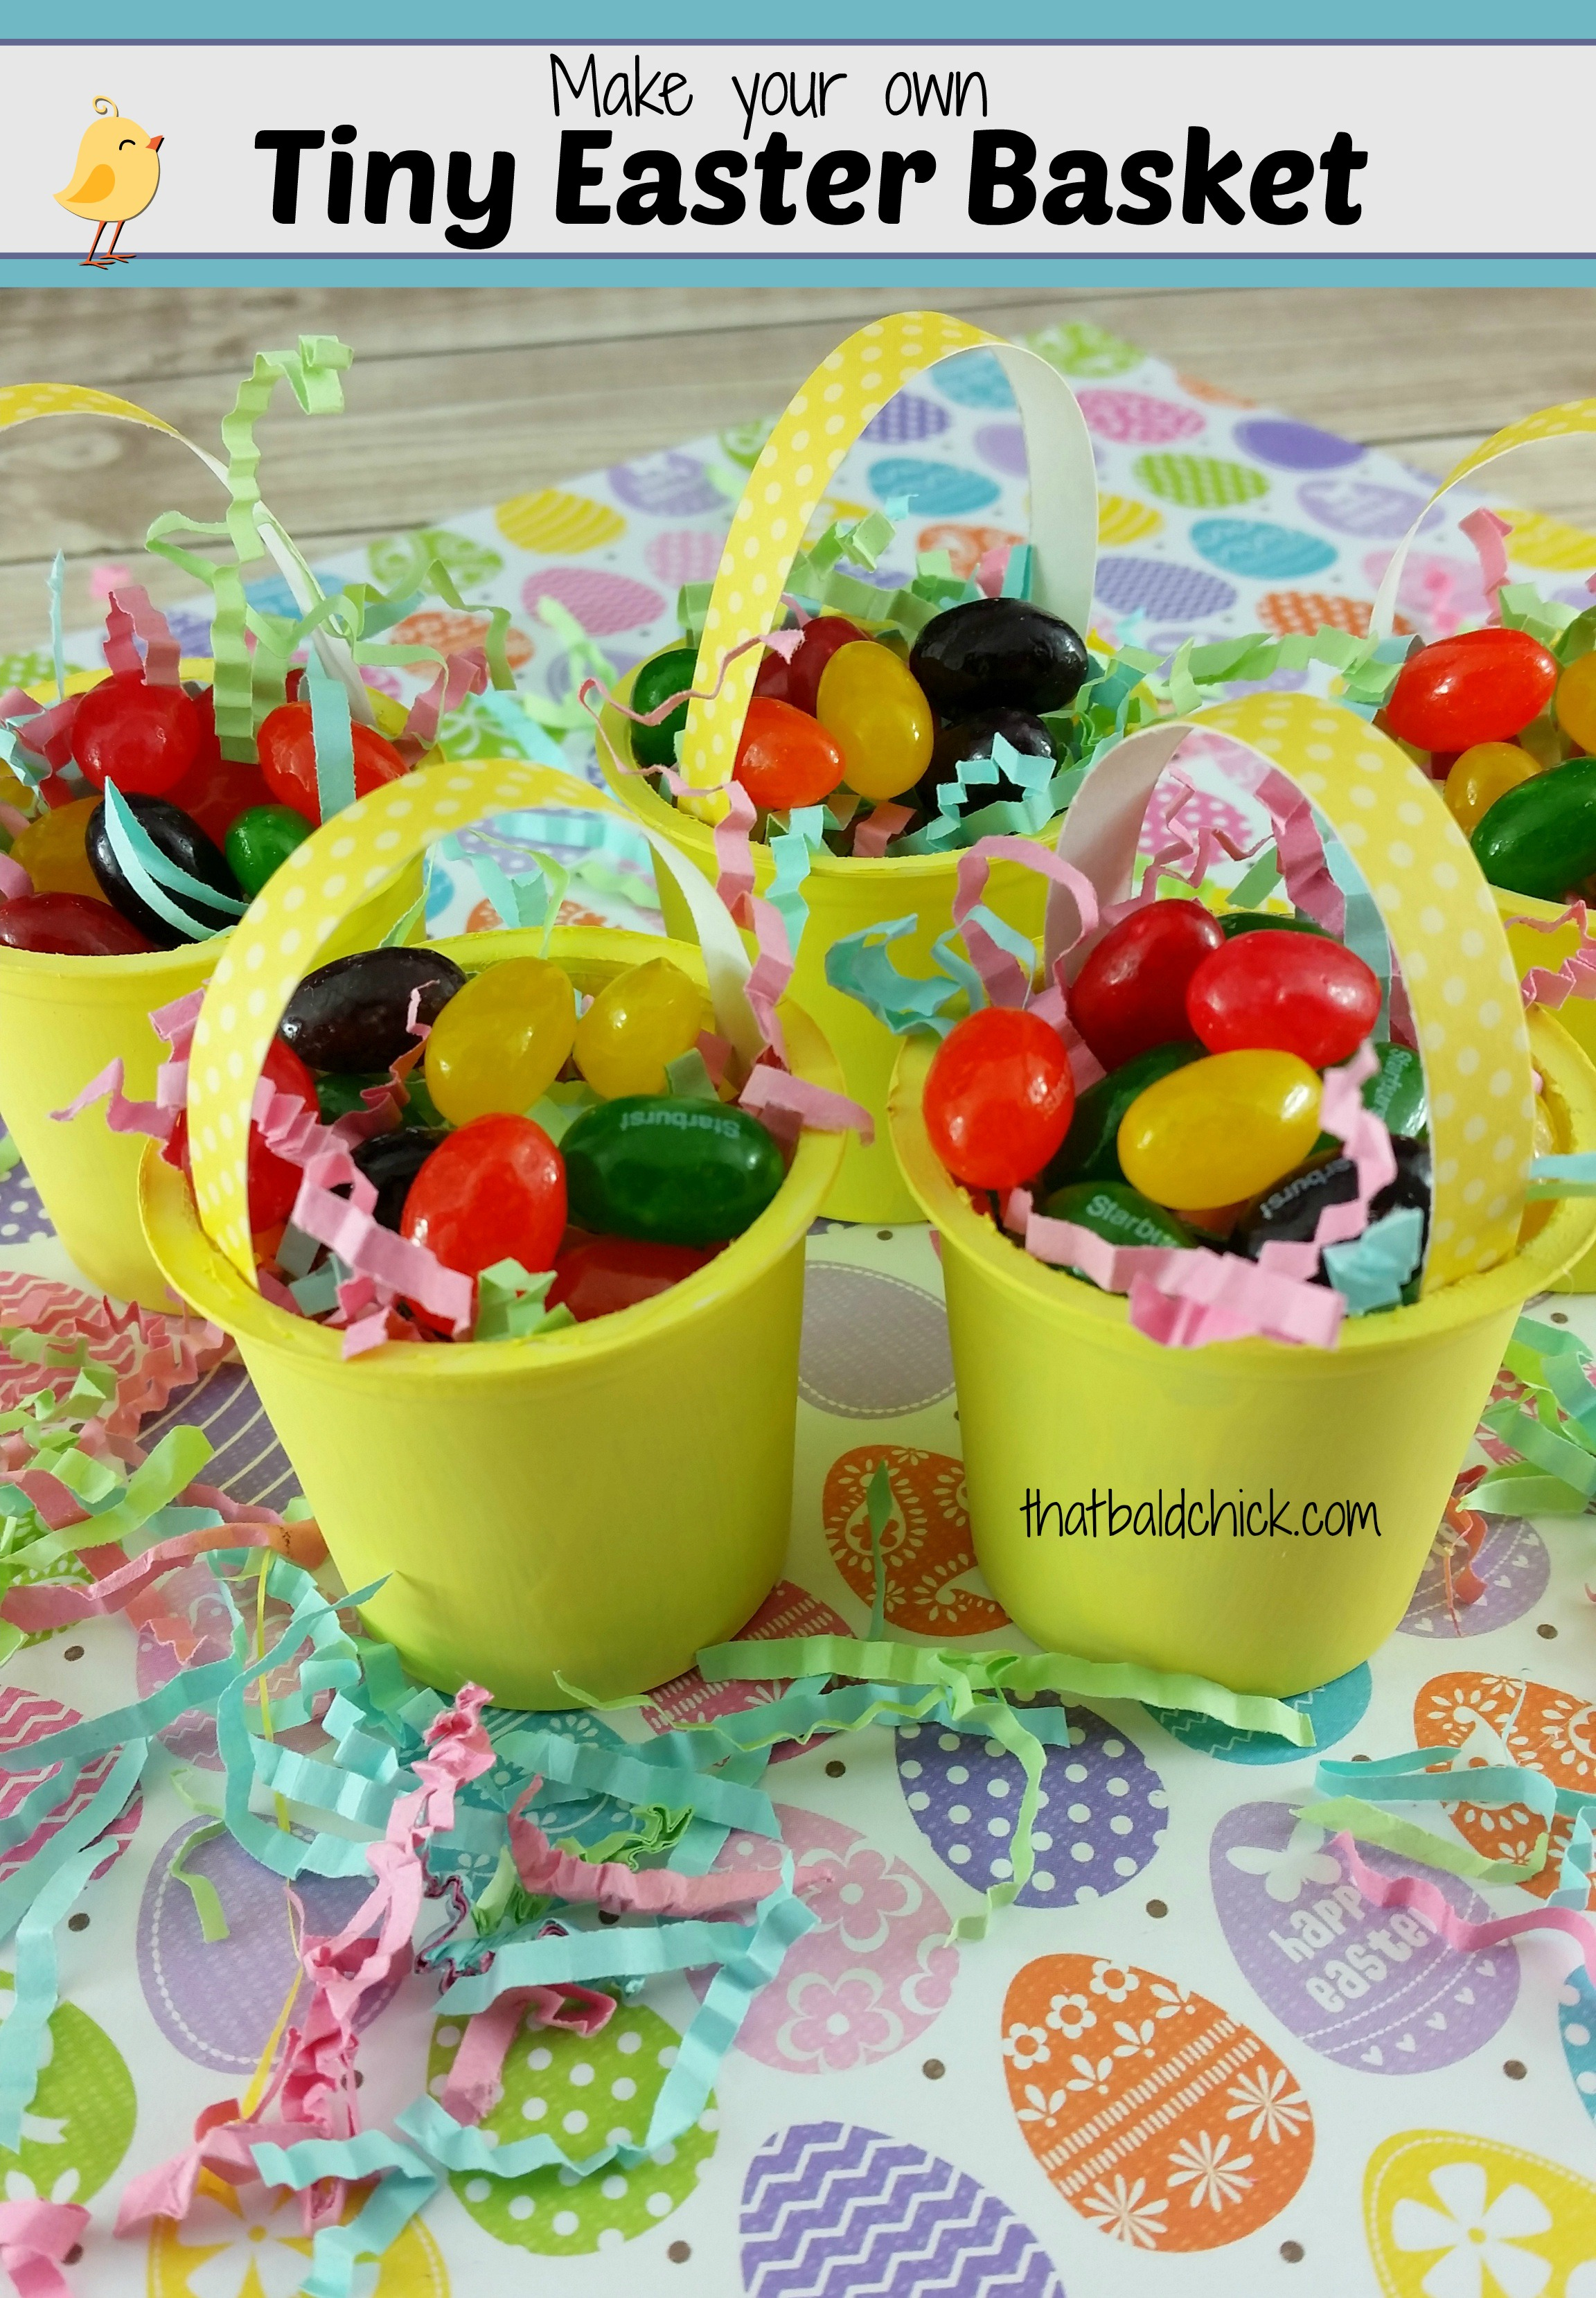 Make Your Own Tiny Easter Basket Craft @thatbaldchick